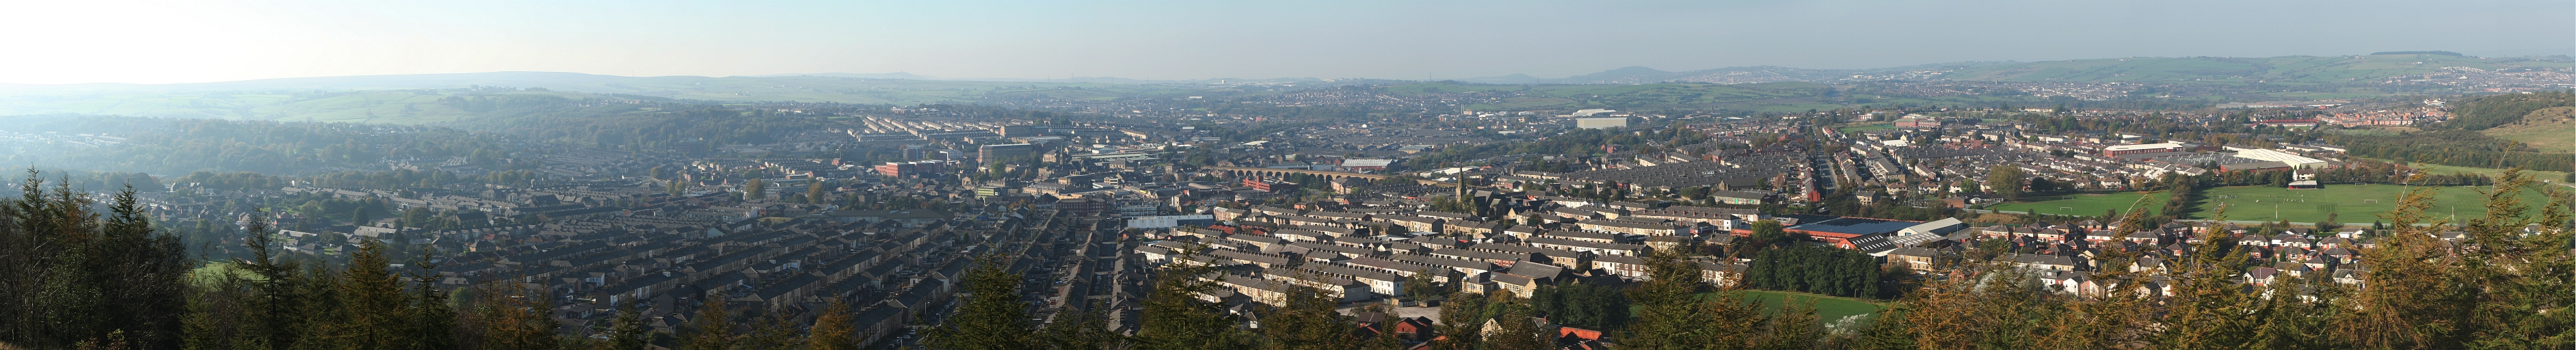 Sunny panorama of Accrington, Lancashire from the Hillock Vale